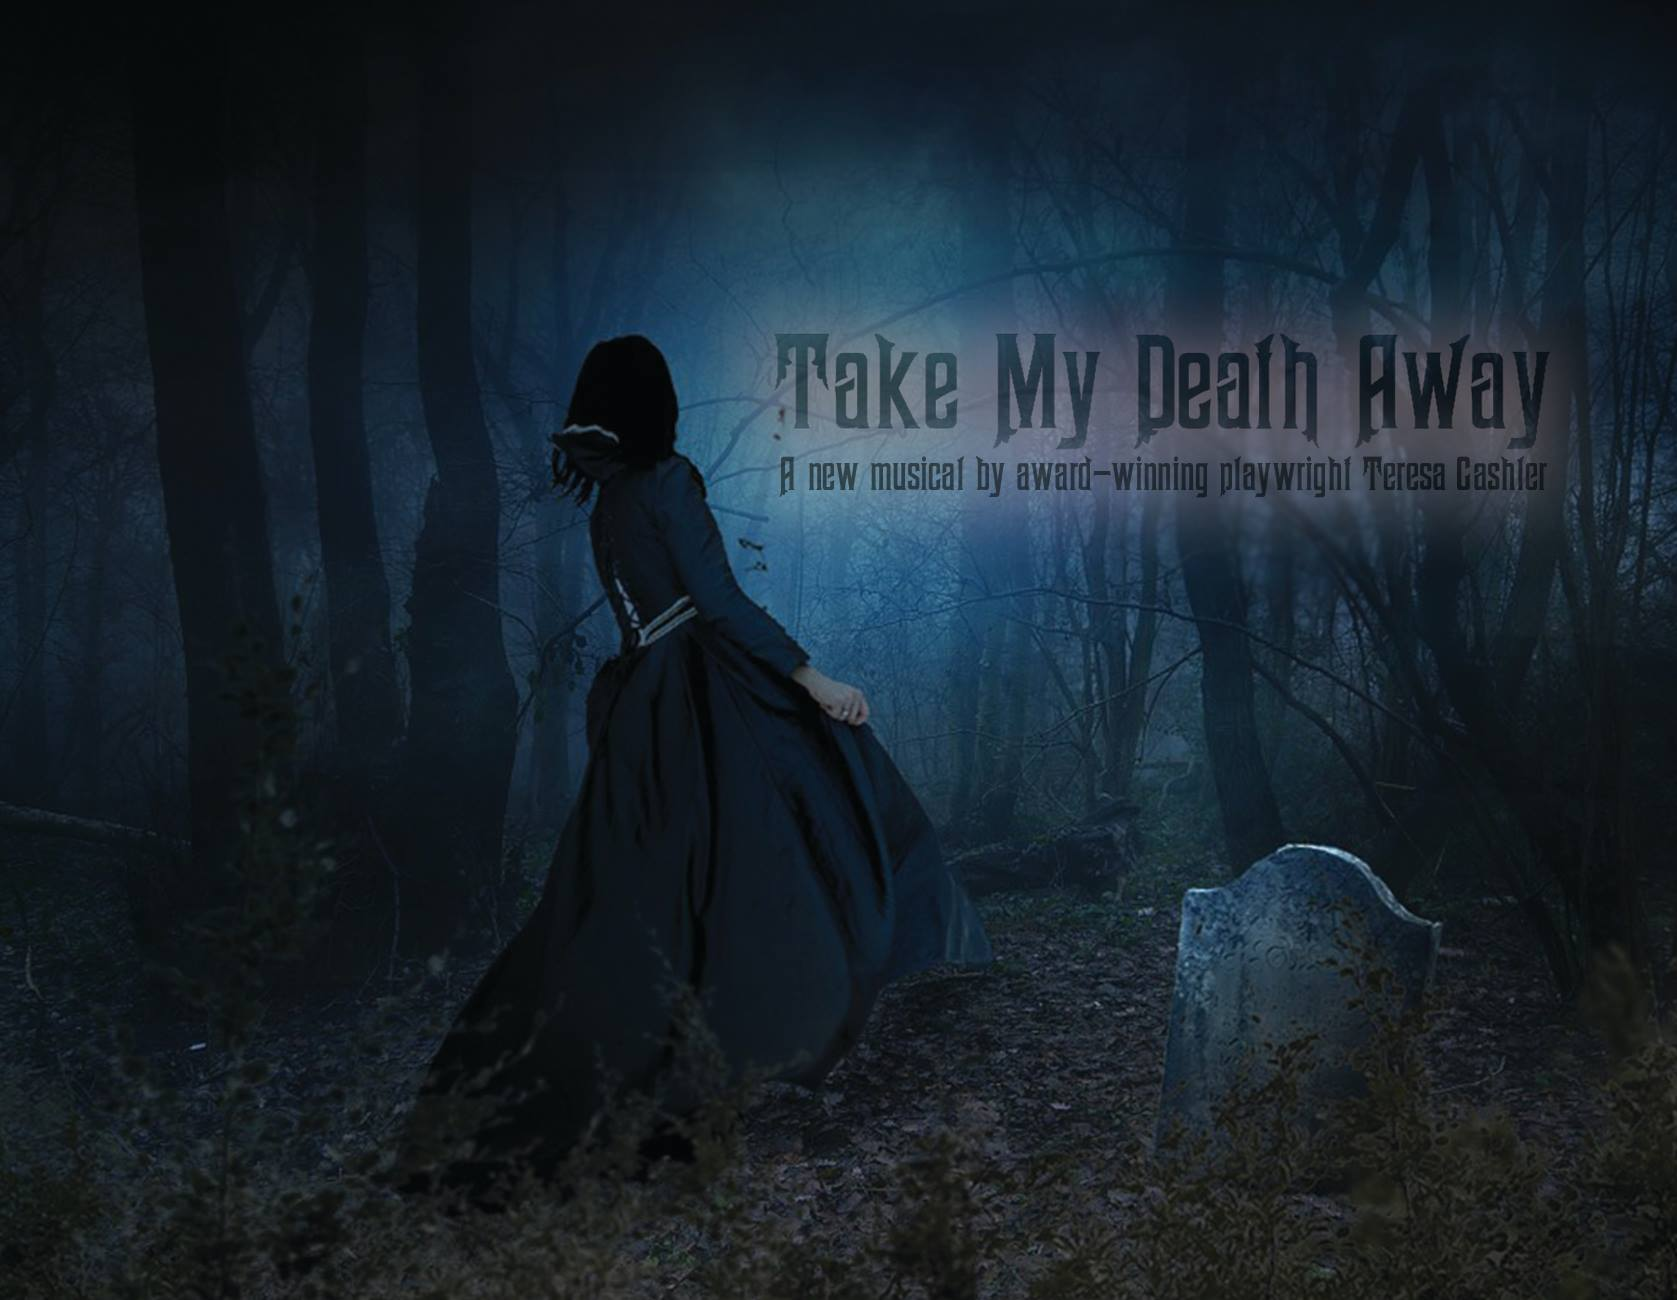 Take My Death Away, a New Musical by Award-winning Playwright Teresa Gashler